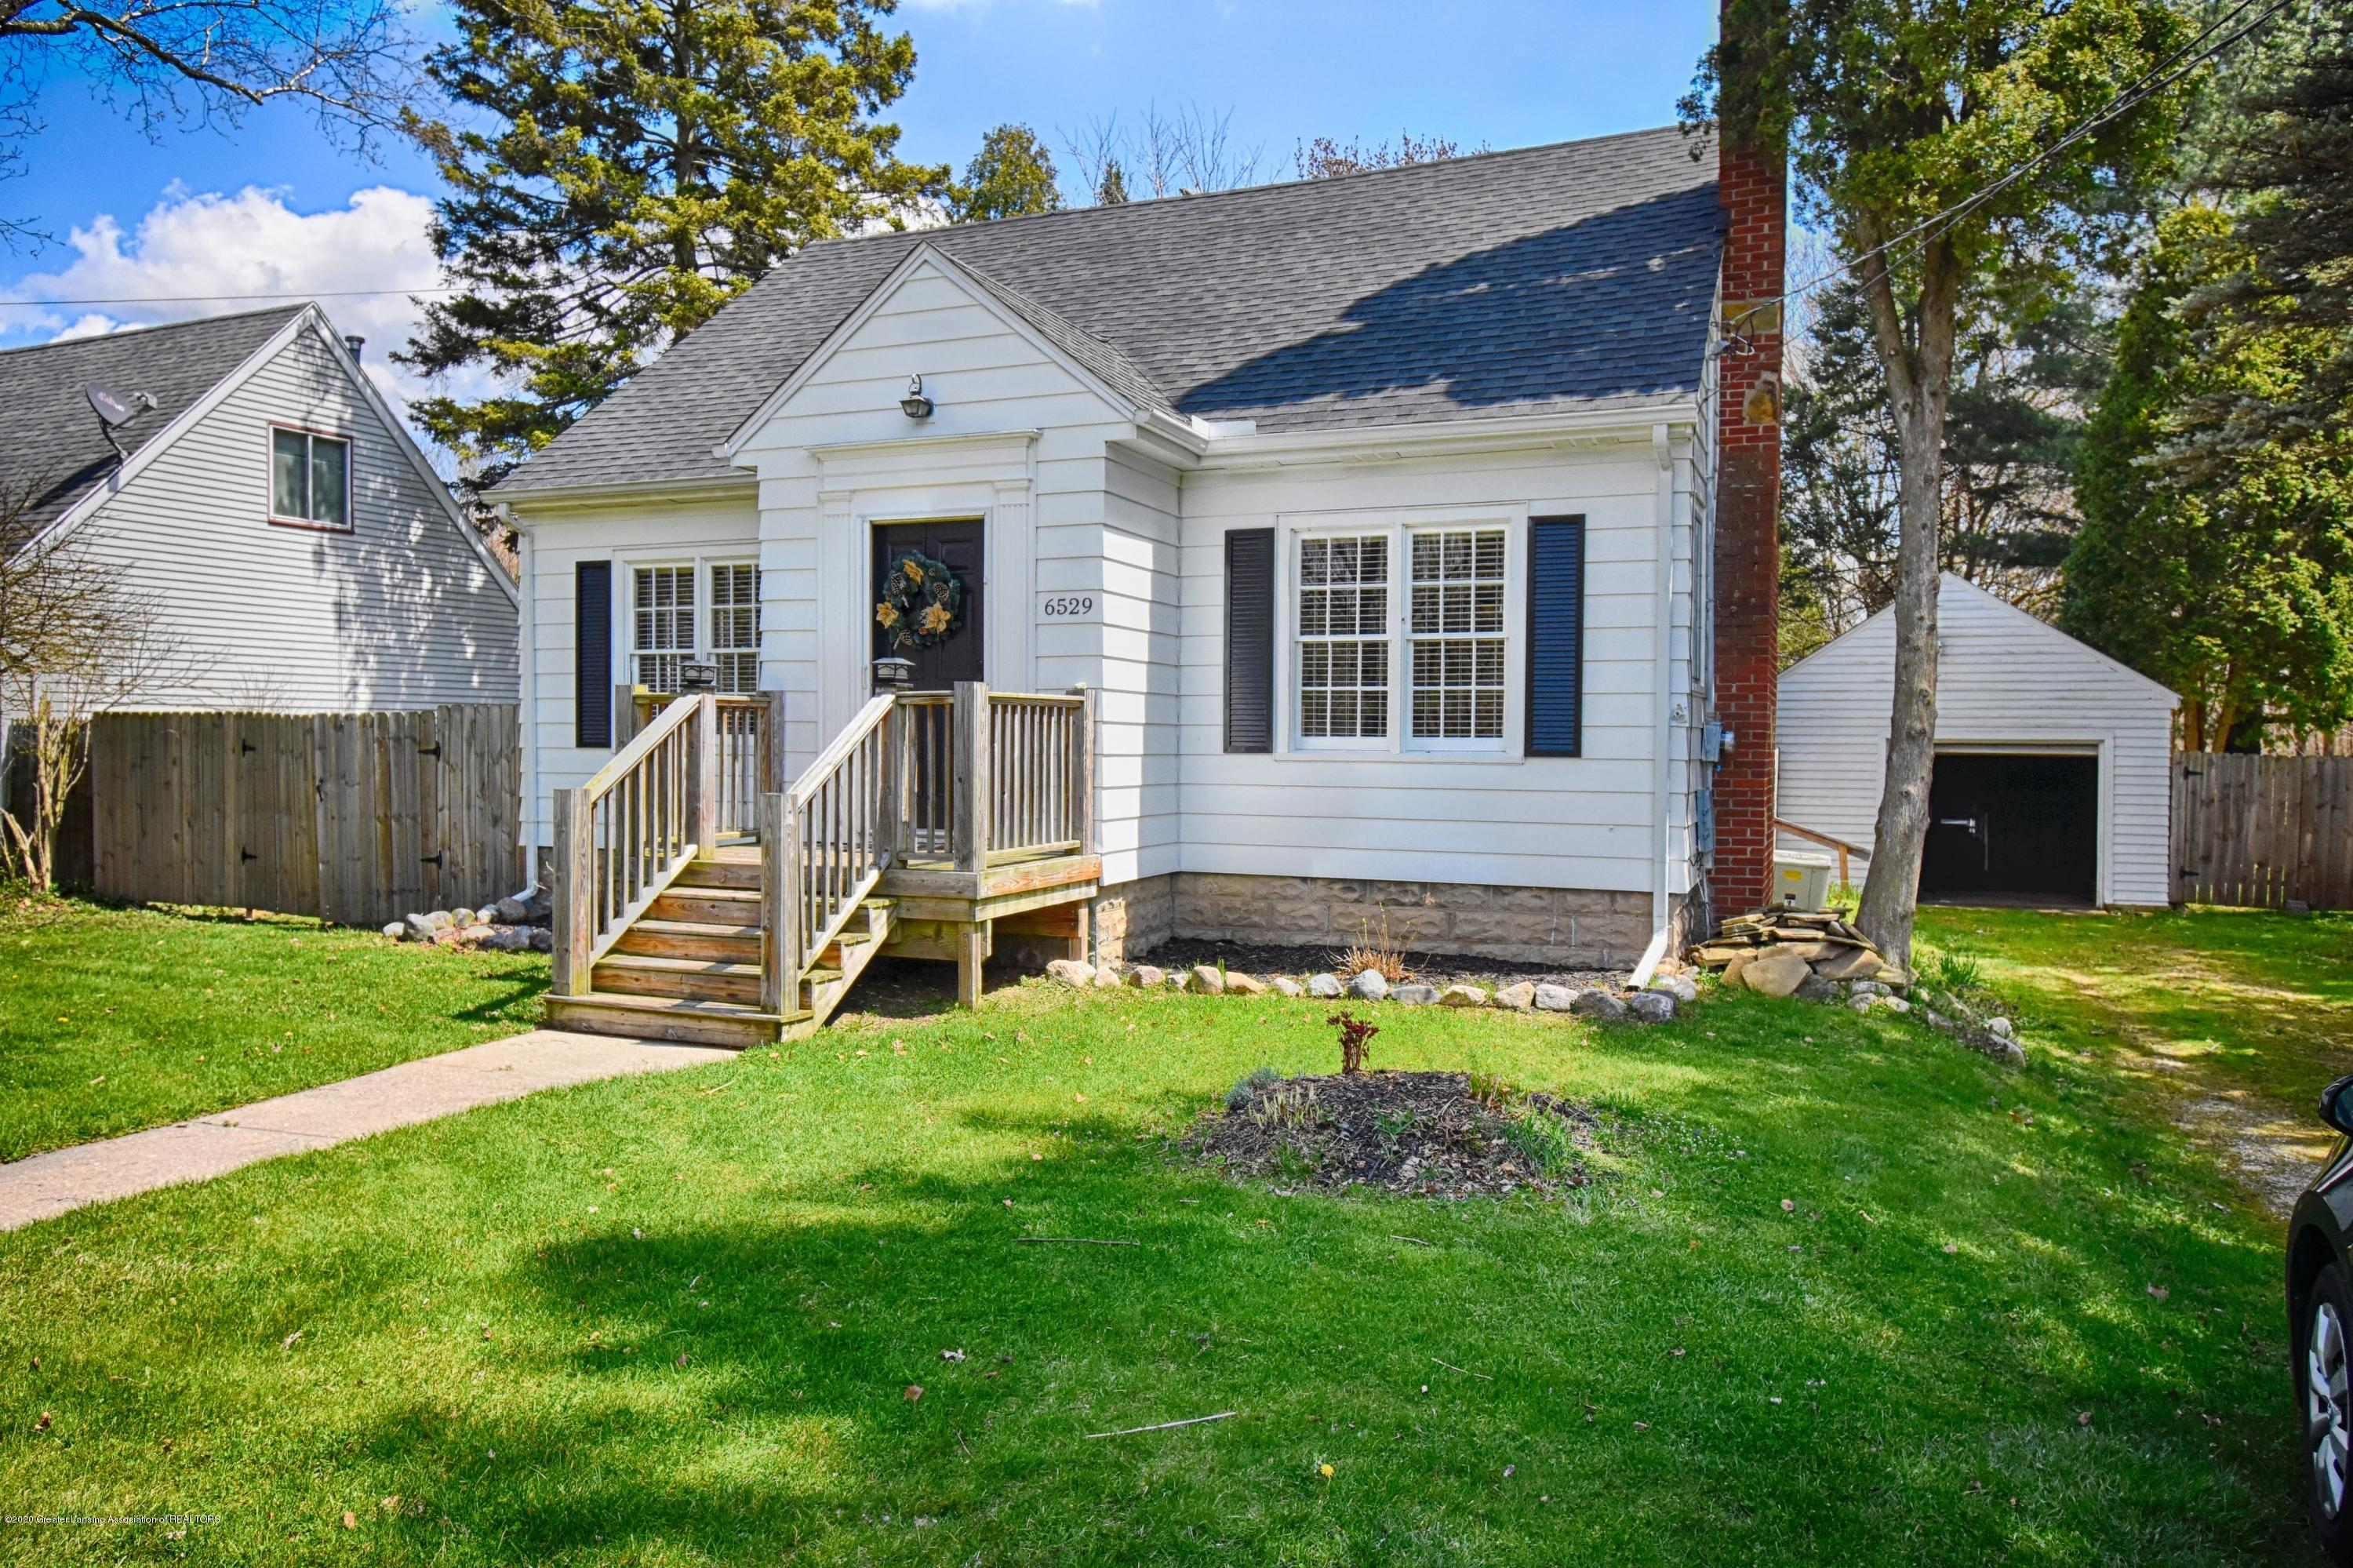 6529 Rosedale Rd - Exterior - 2